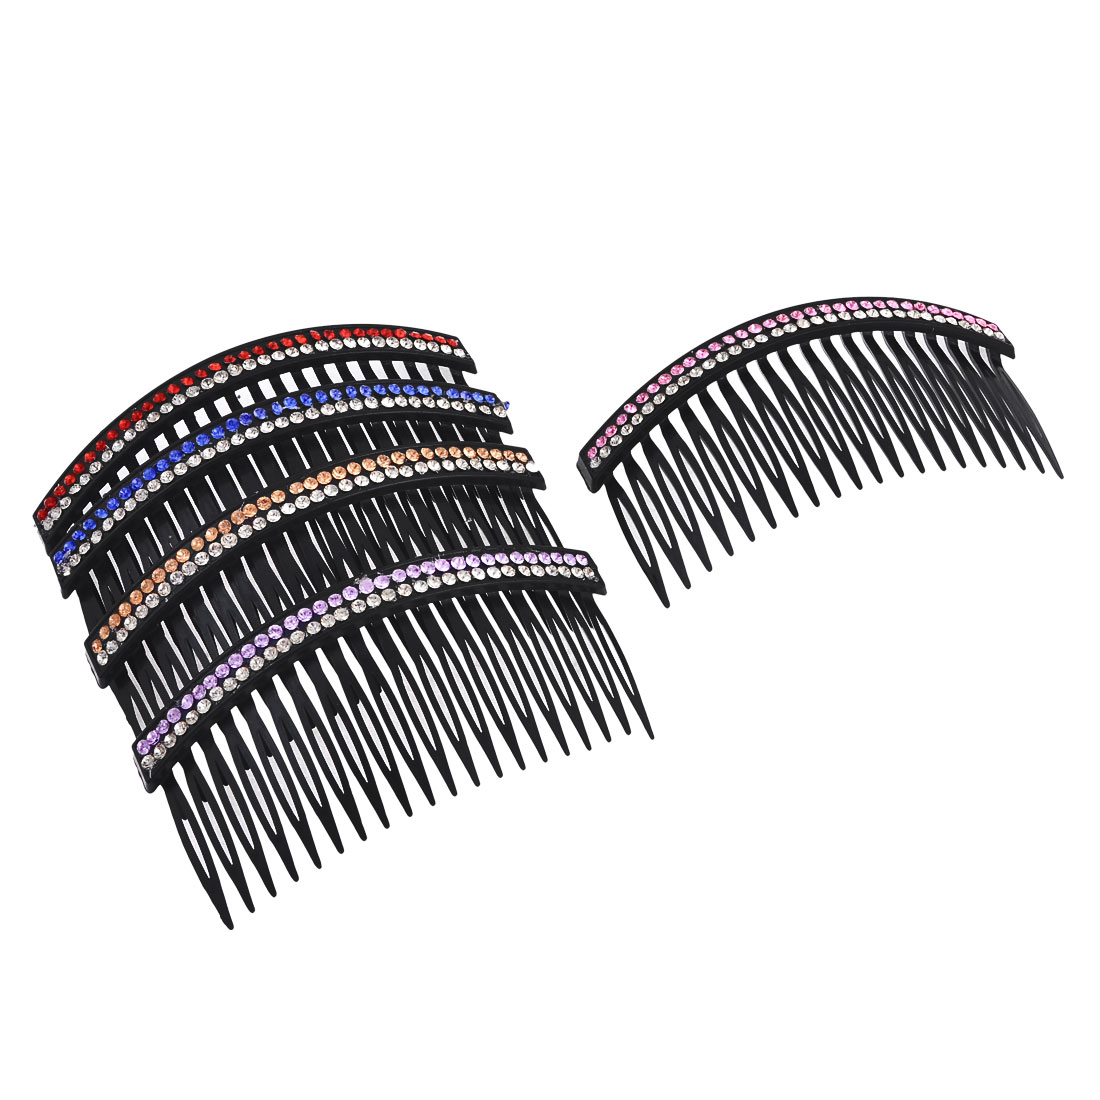 5 Pcs Double Row Bling Rhinestones Accent Comb Hair Clip Clamp Black for Women